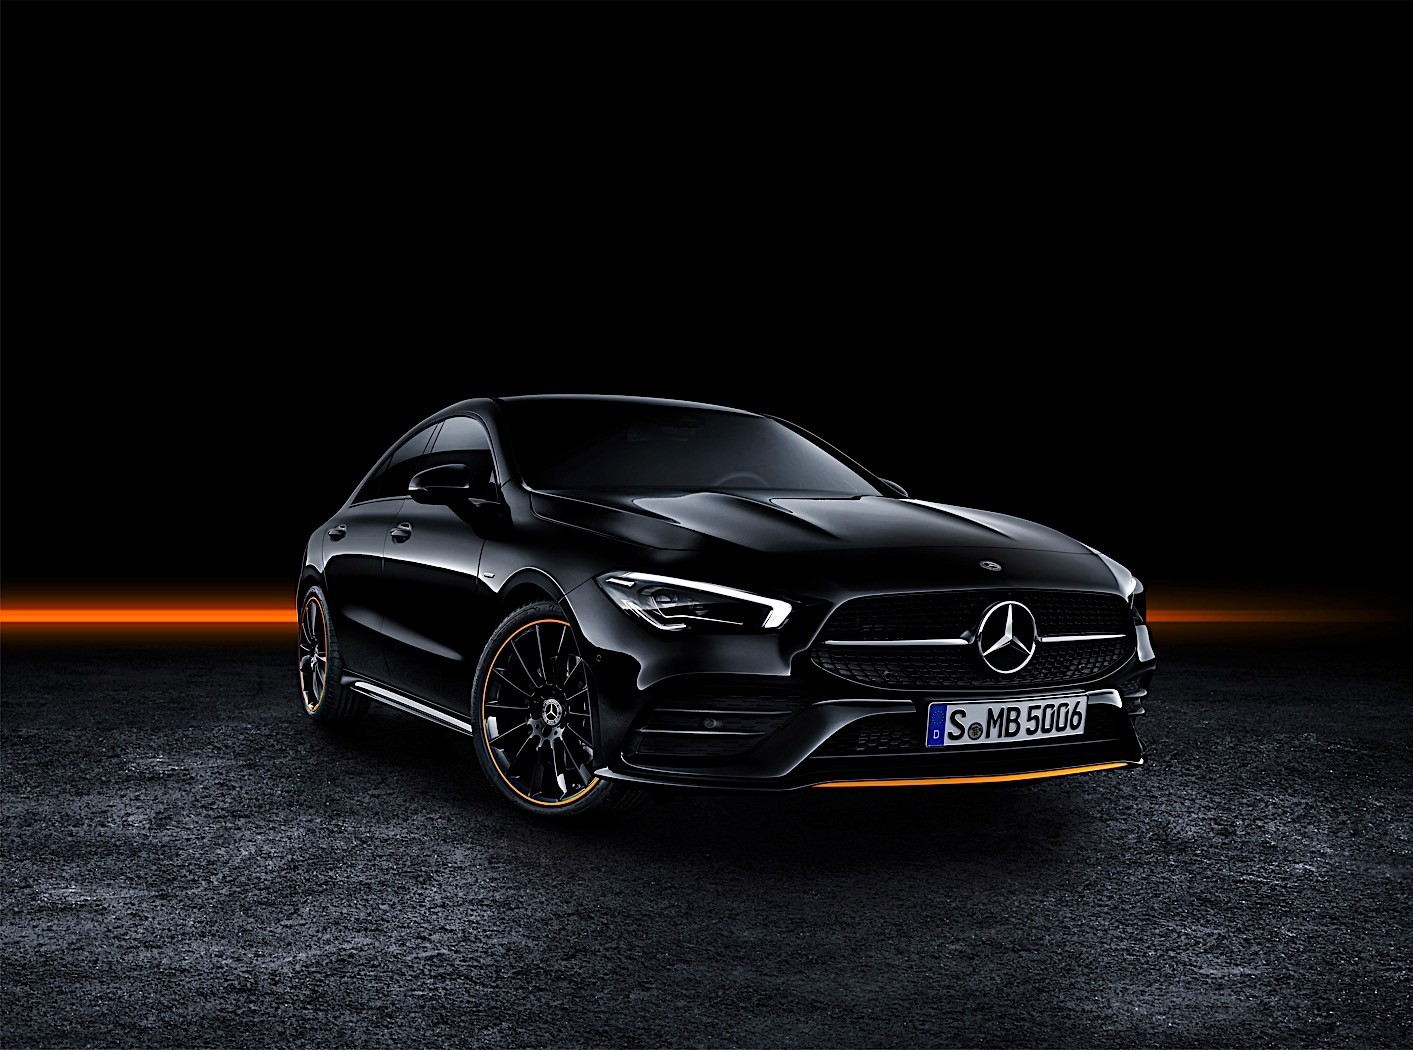 2020 mercedes benz cla coupe unveiled at ces 2019 new mbux and garmin smartwatch autoevolution. Black Bedroom Furniture Sets. Home Design Ideas